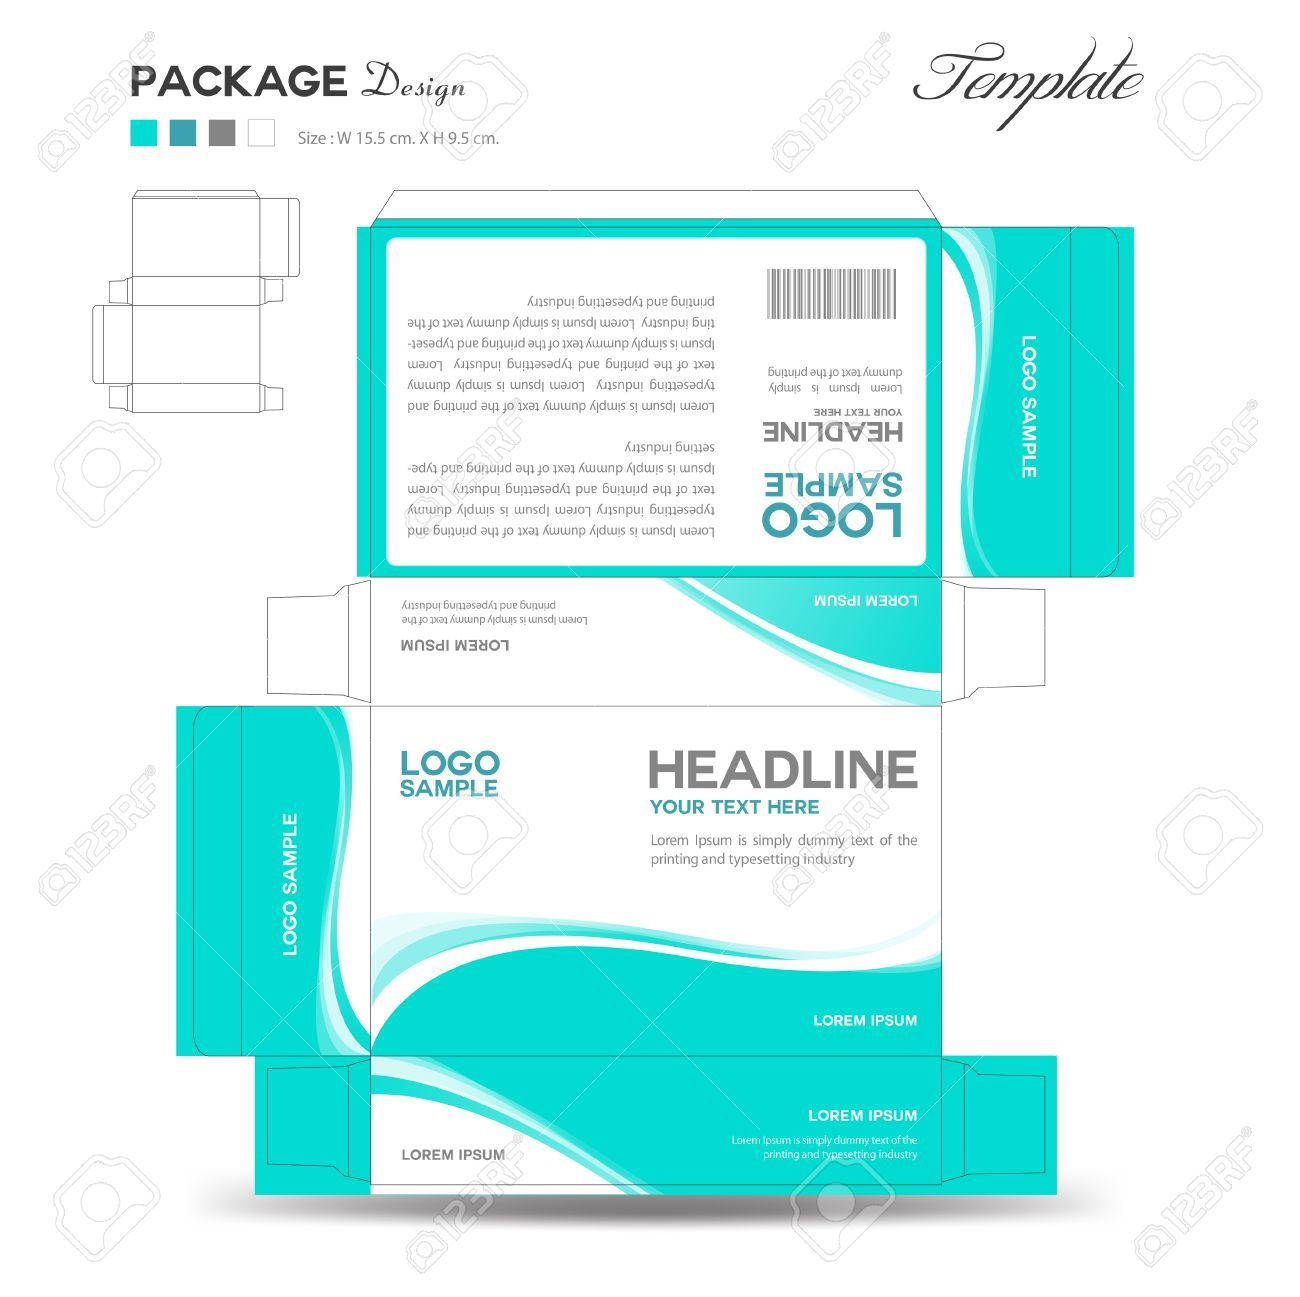 000 Marvelou Product Packaging Design Template Image  Templates Free Download SampleFull